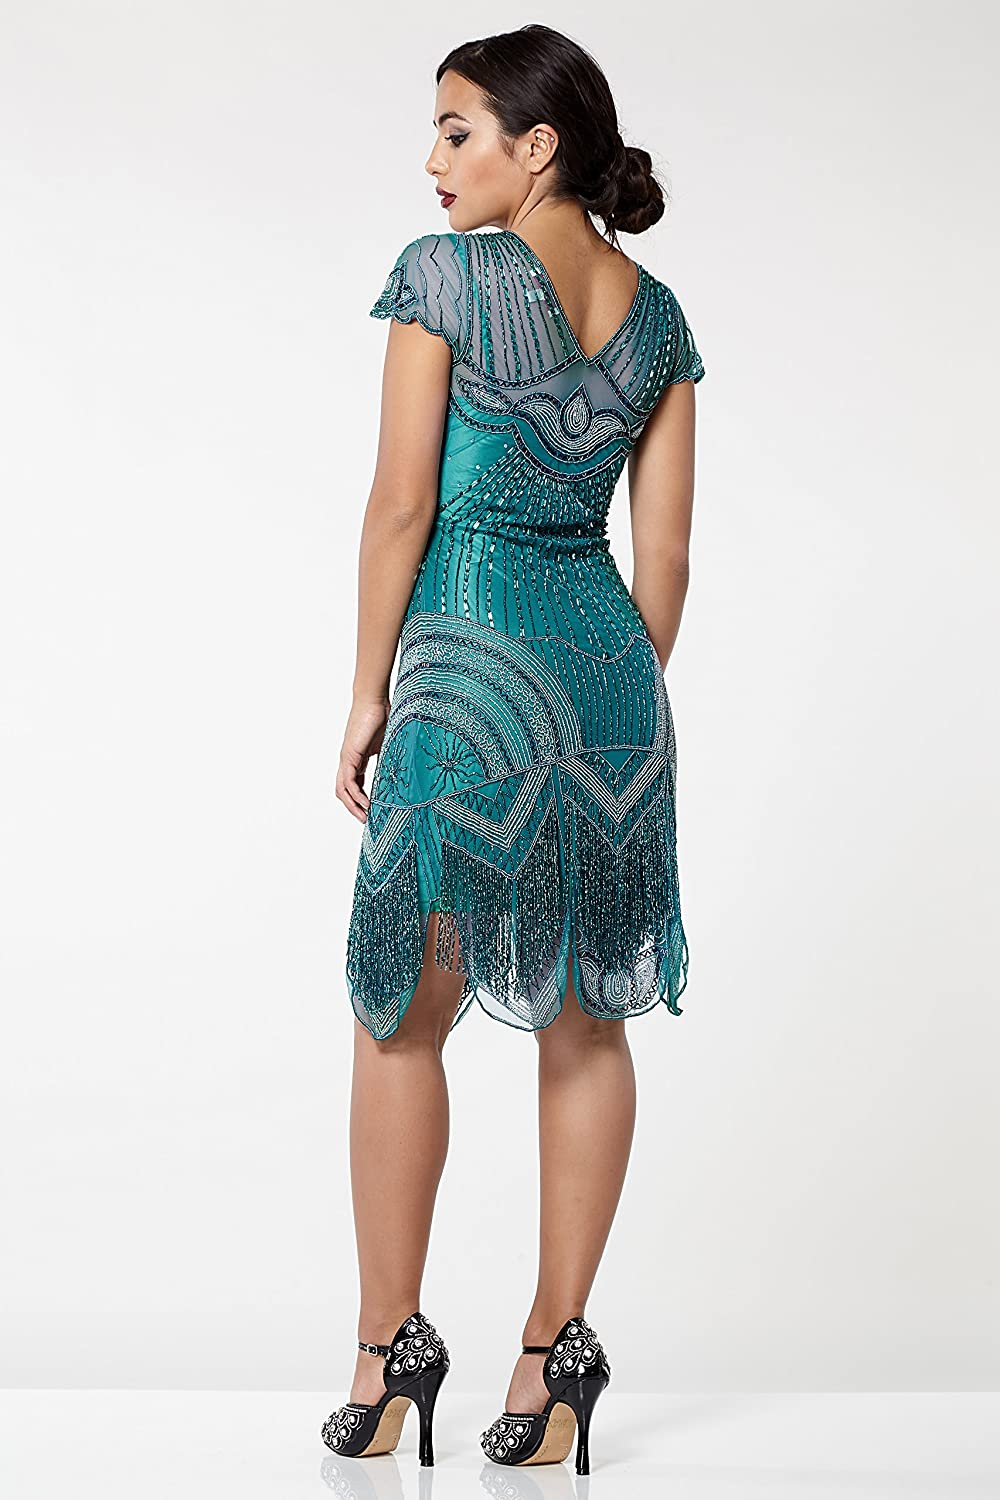 Beatrice Vintage Inspired Fringe Flapper Dress in Teal at Amazon ...